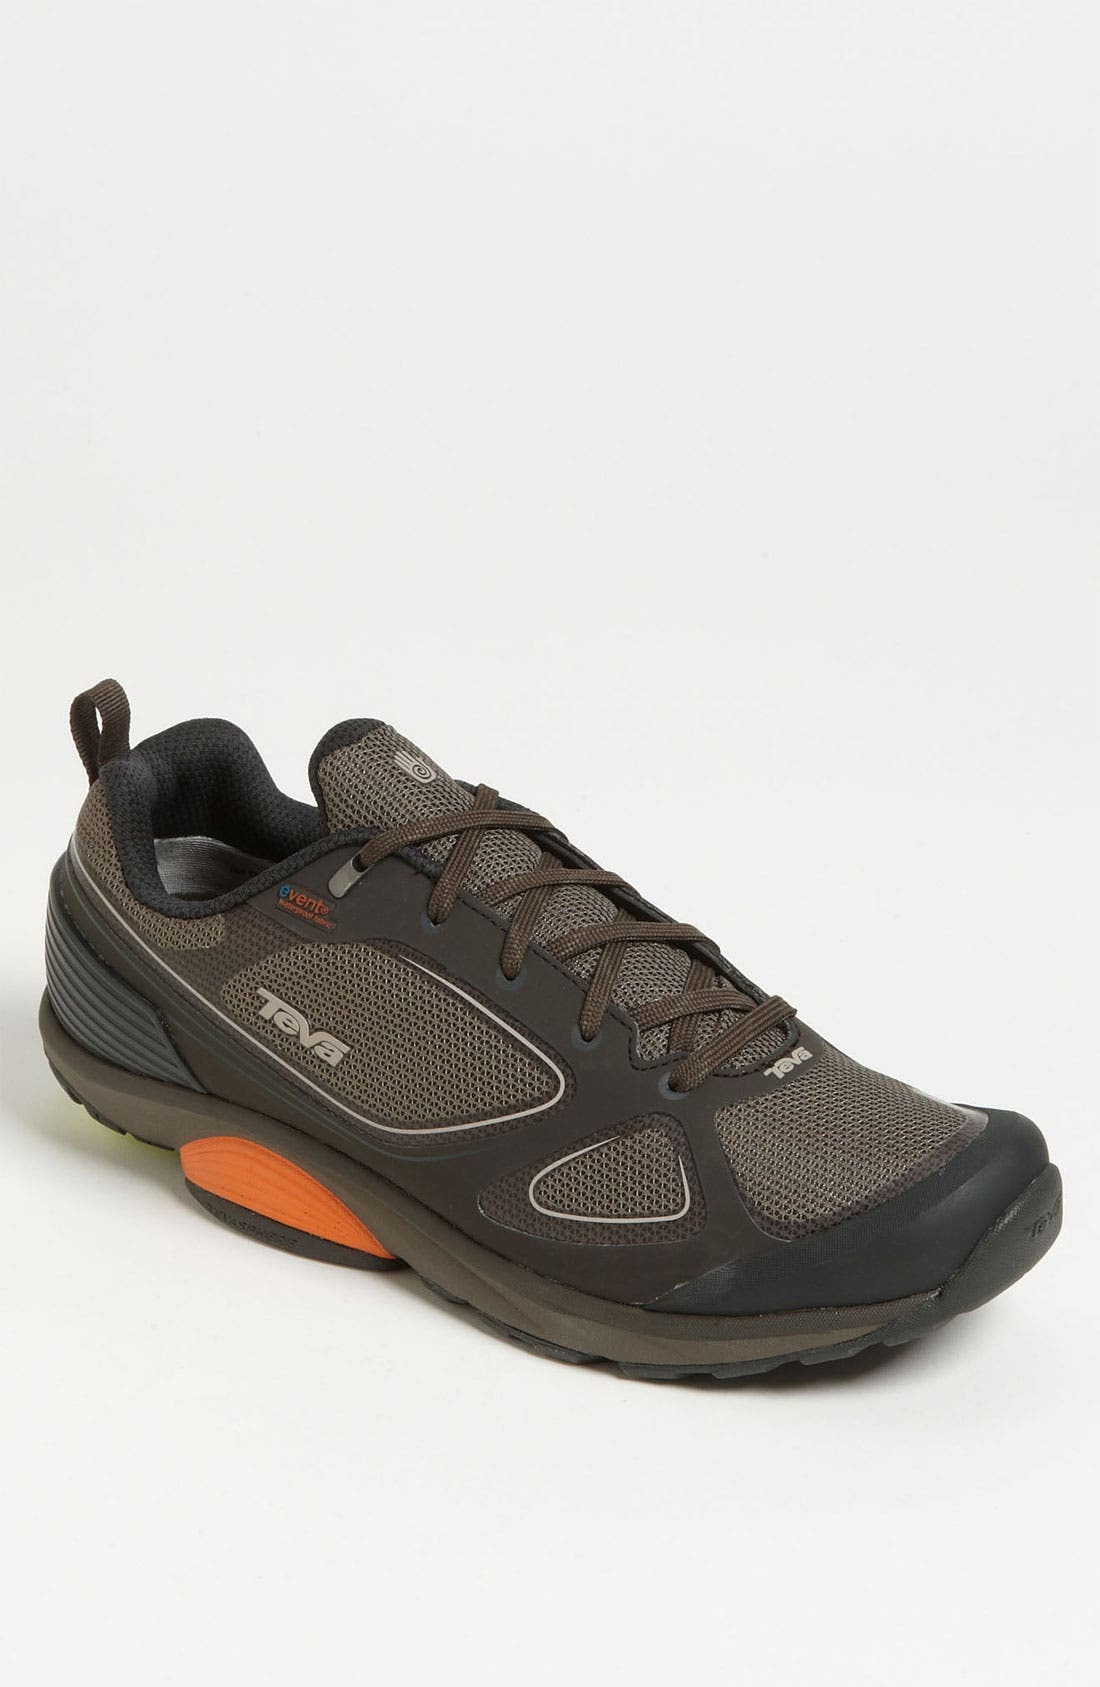 Main Image - Teva 'TevaSphere Trail' Training Shoe (Men)